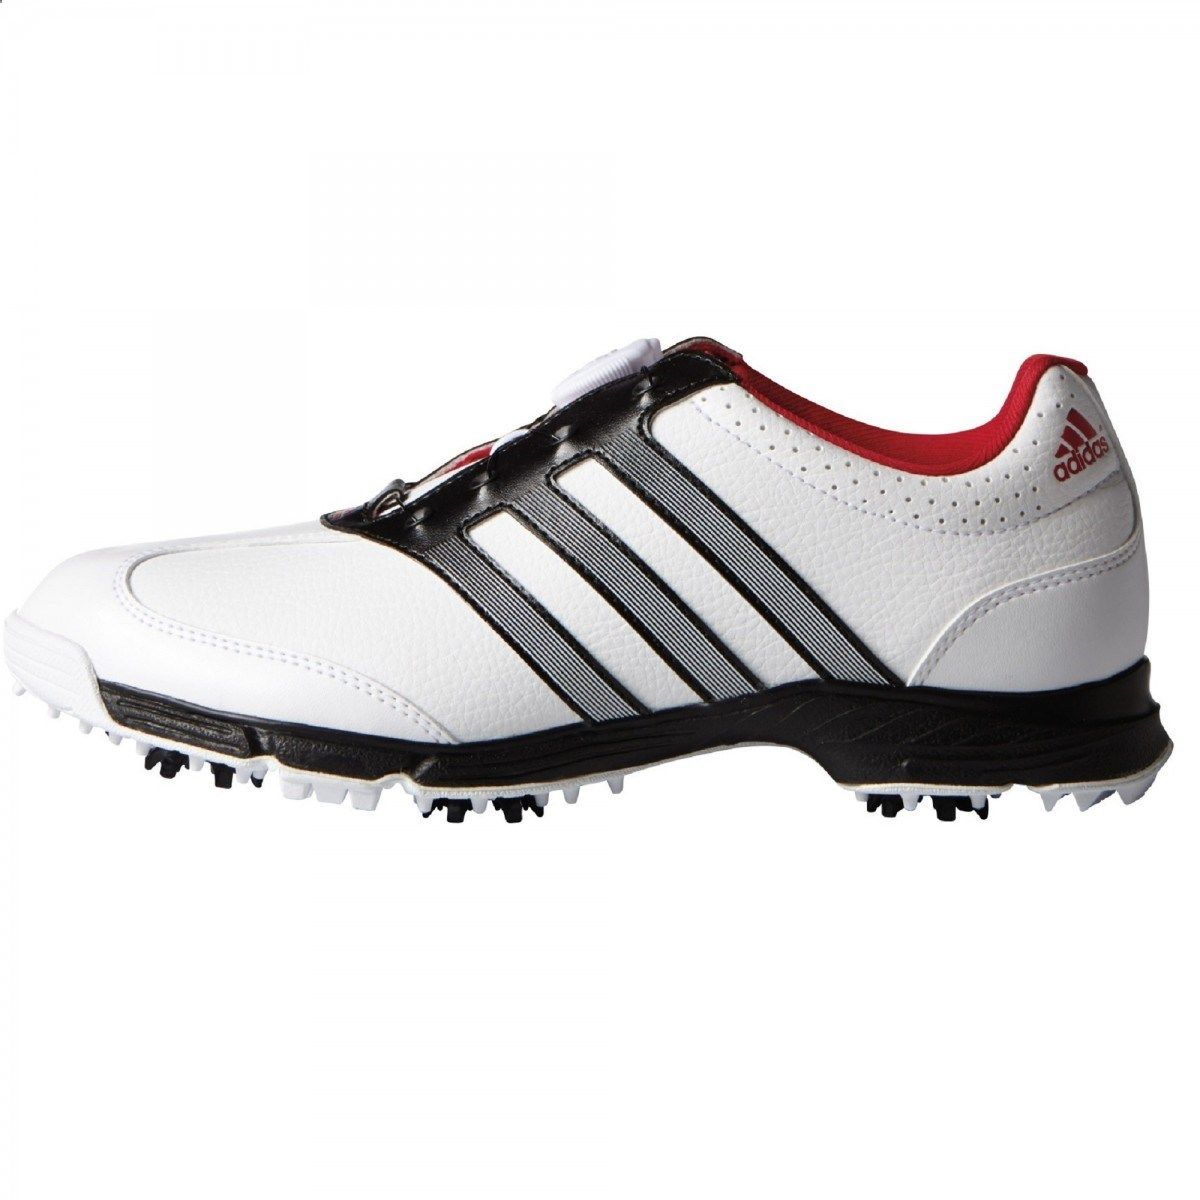 87a16d86f Golf Shoes - Adidas Womens Golf Shoe Response BOA F33311 White Black from  Golf Ski Warehouse